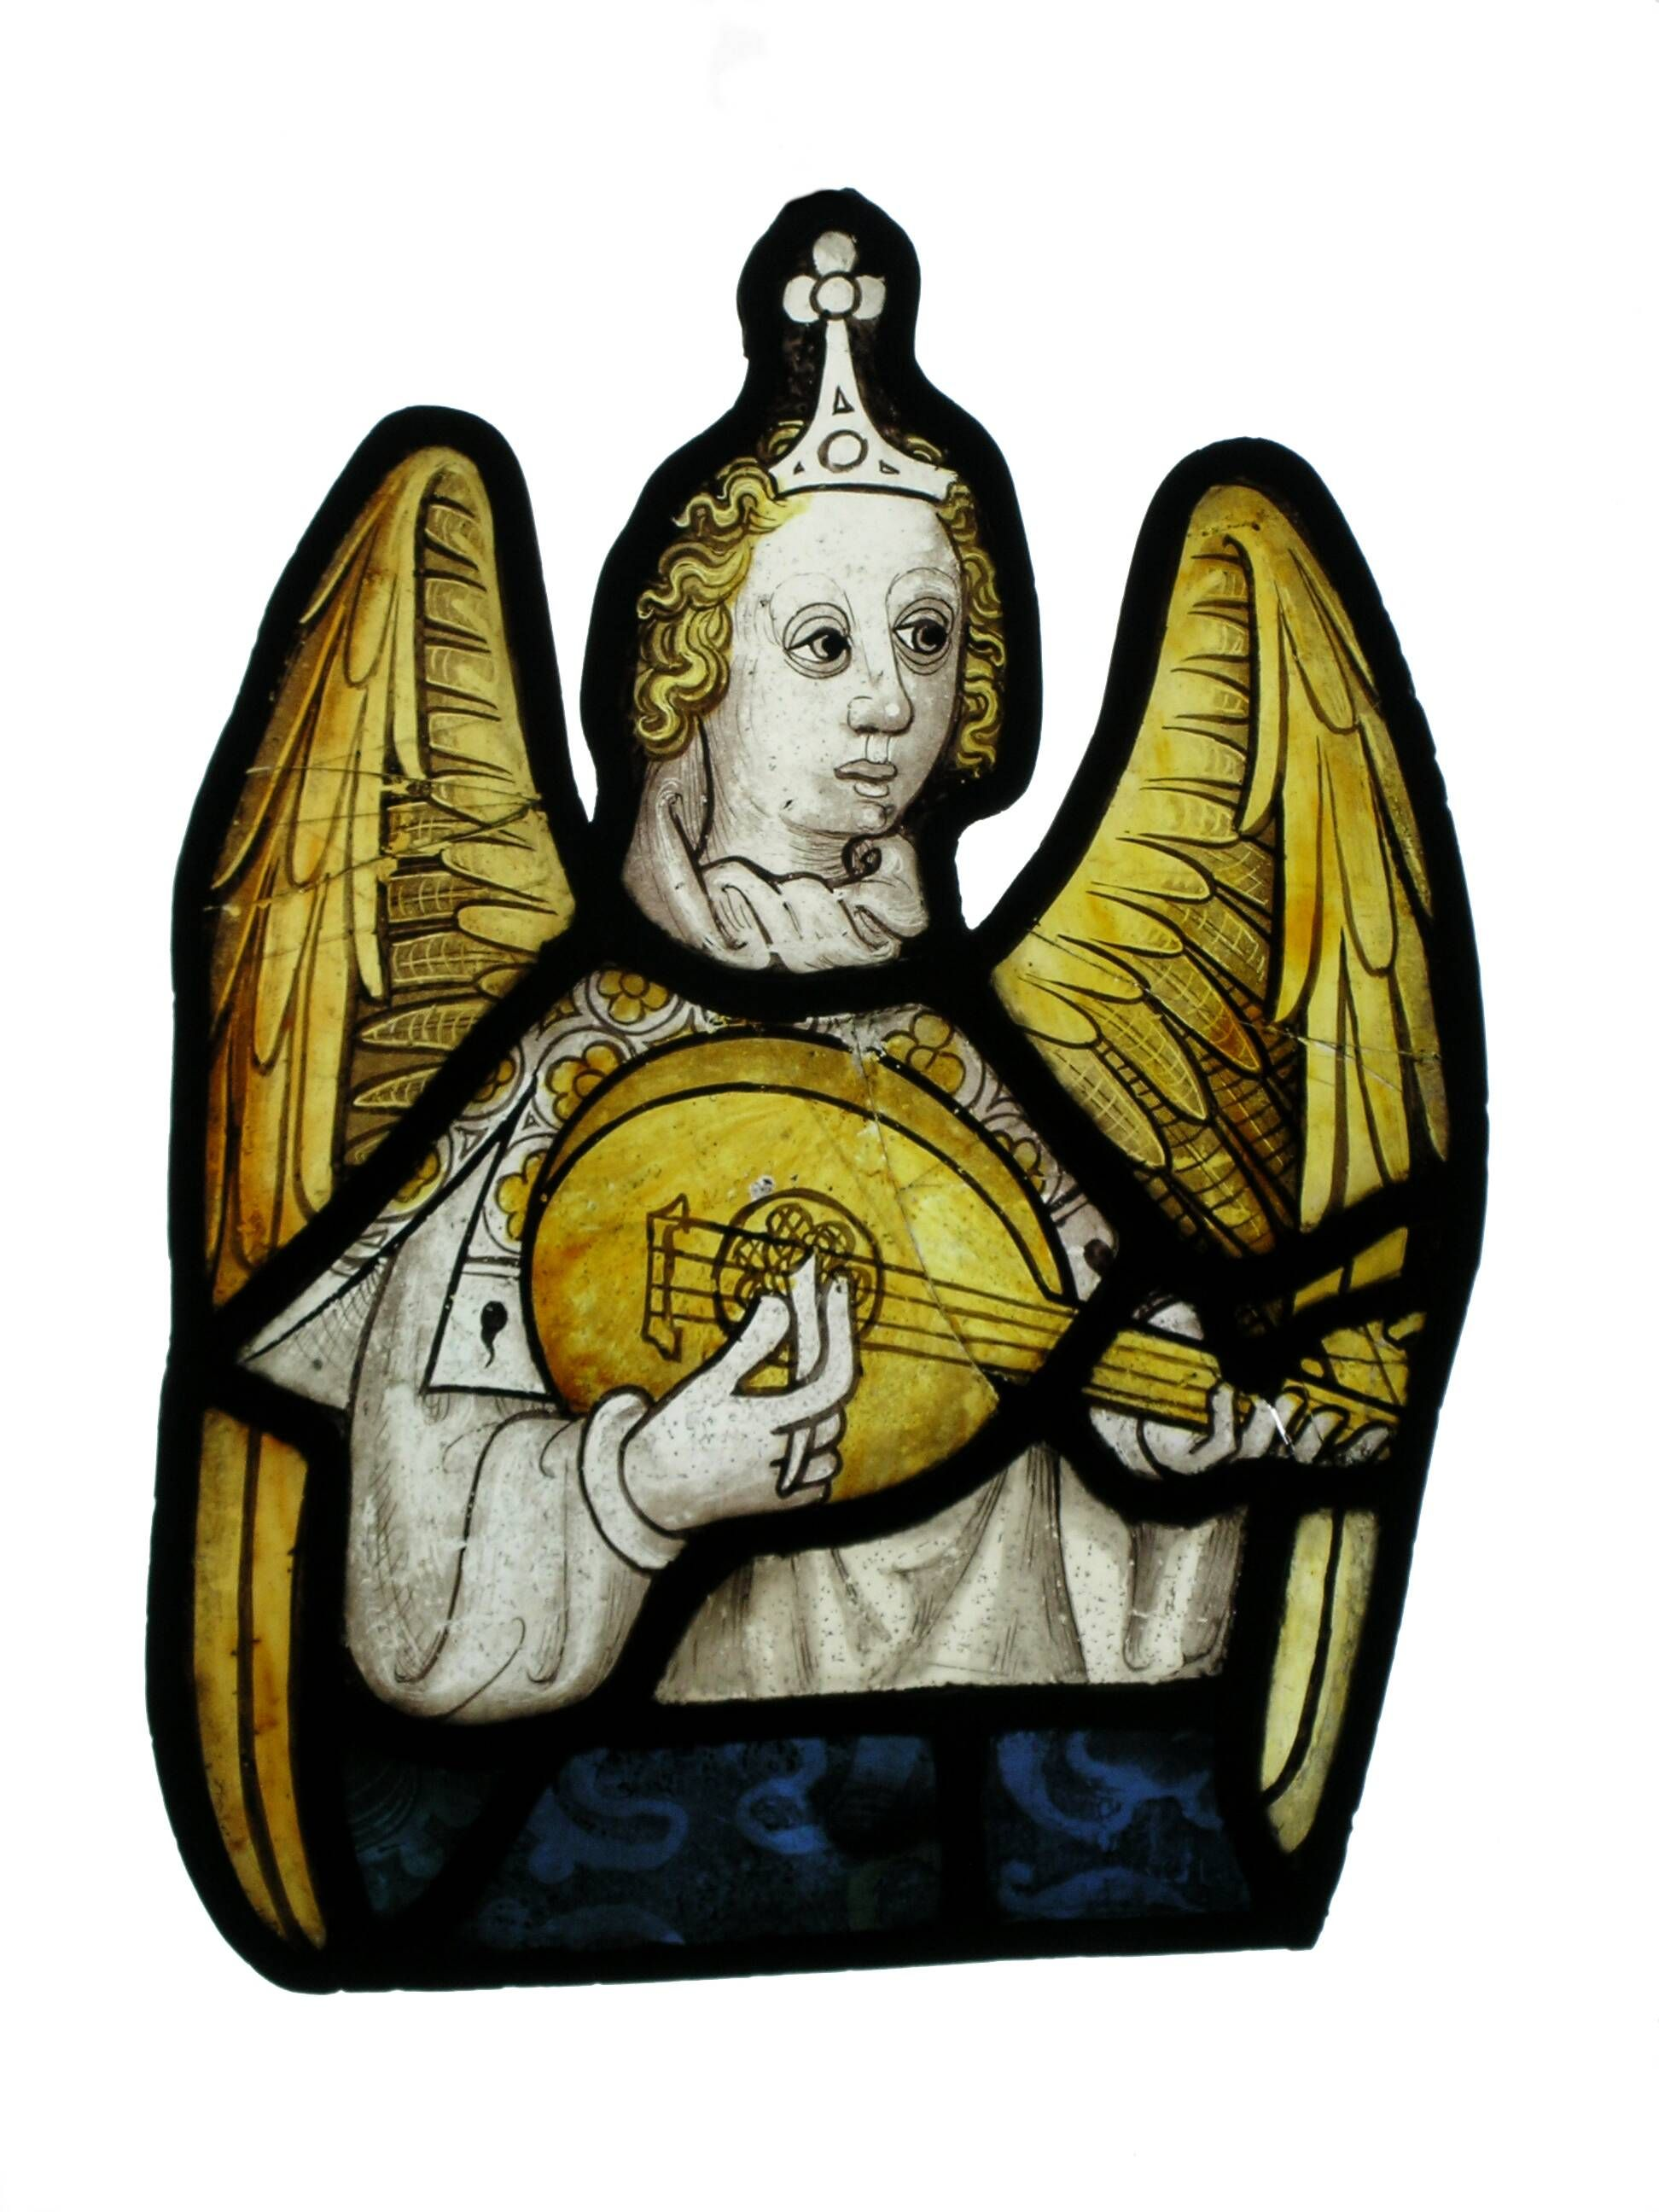 Angel with lute or gittern, c. mid 15th century. Kept at the Walker Art Gallery, Liverpool.  http://www.cvma.ac.uk/jsp/record.do?mode=ADV_SEARCH&photodataKey=17748&sortField=WINDOW_NO&sortDirection=ASC&rowsPerPage=20&selectedPage=1&recPagePos=5